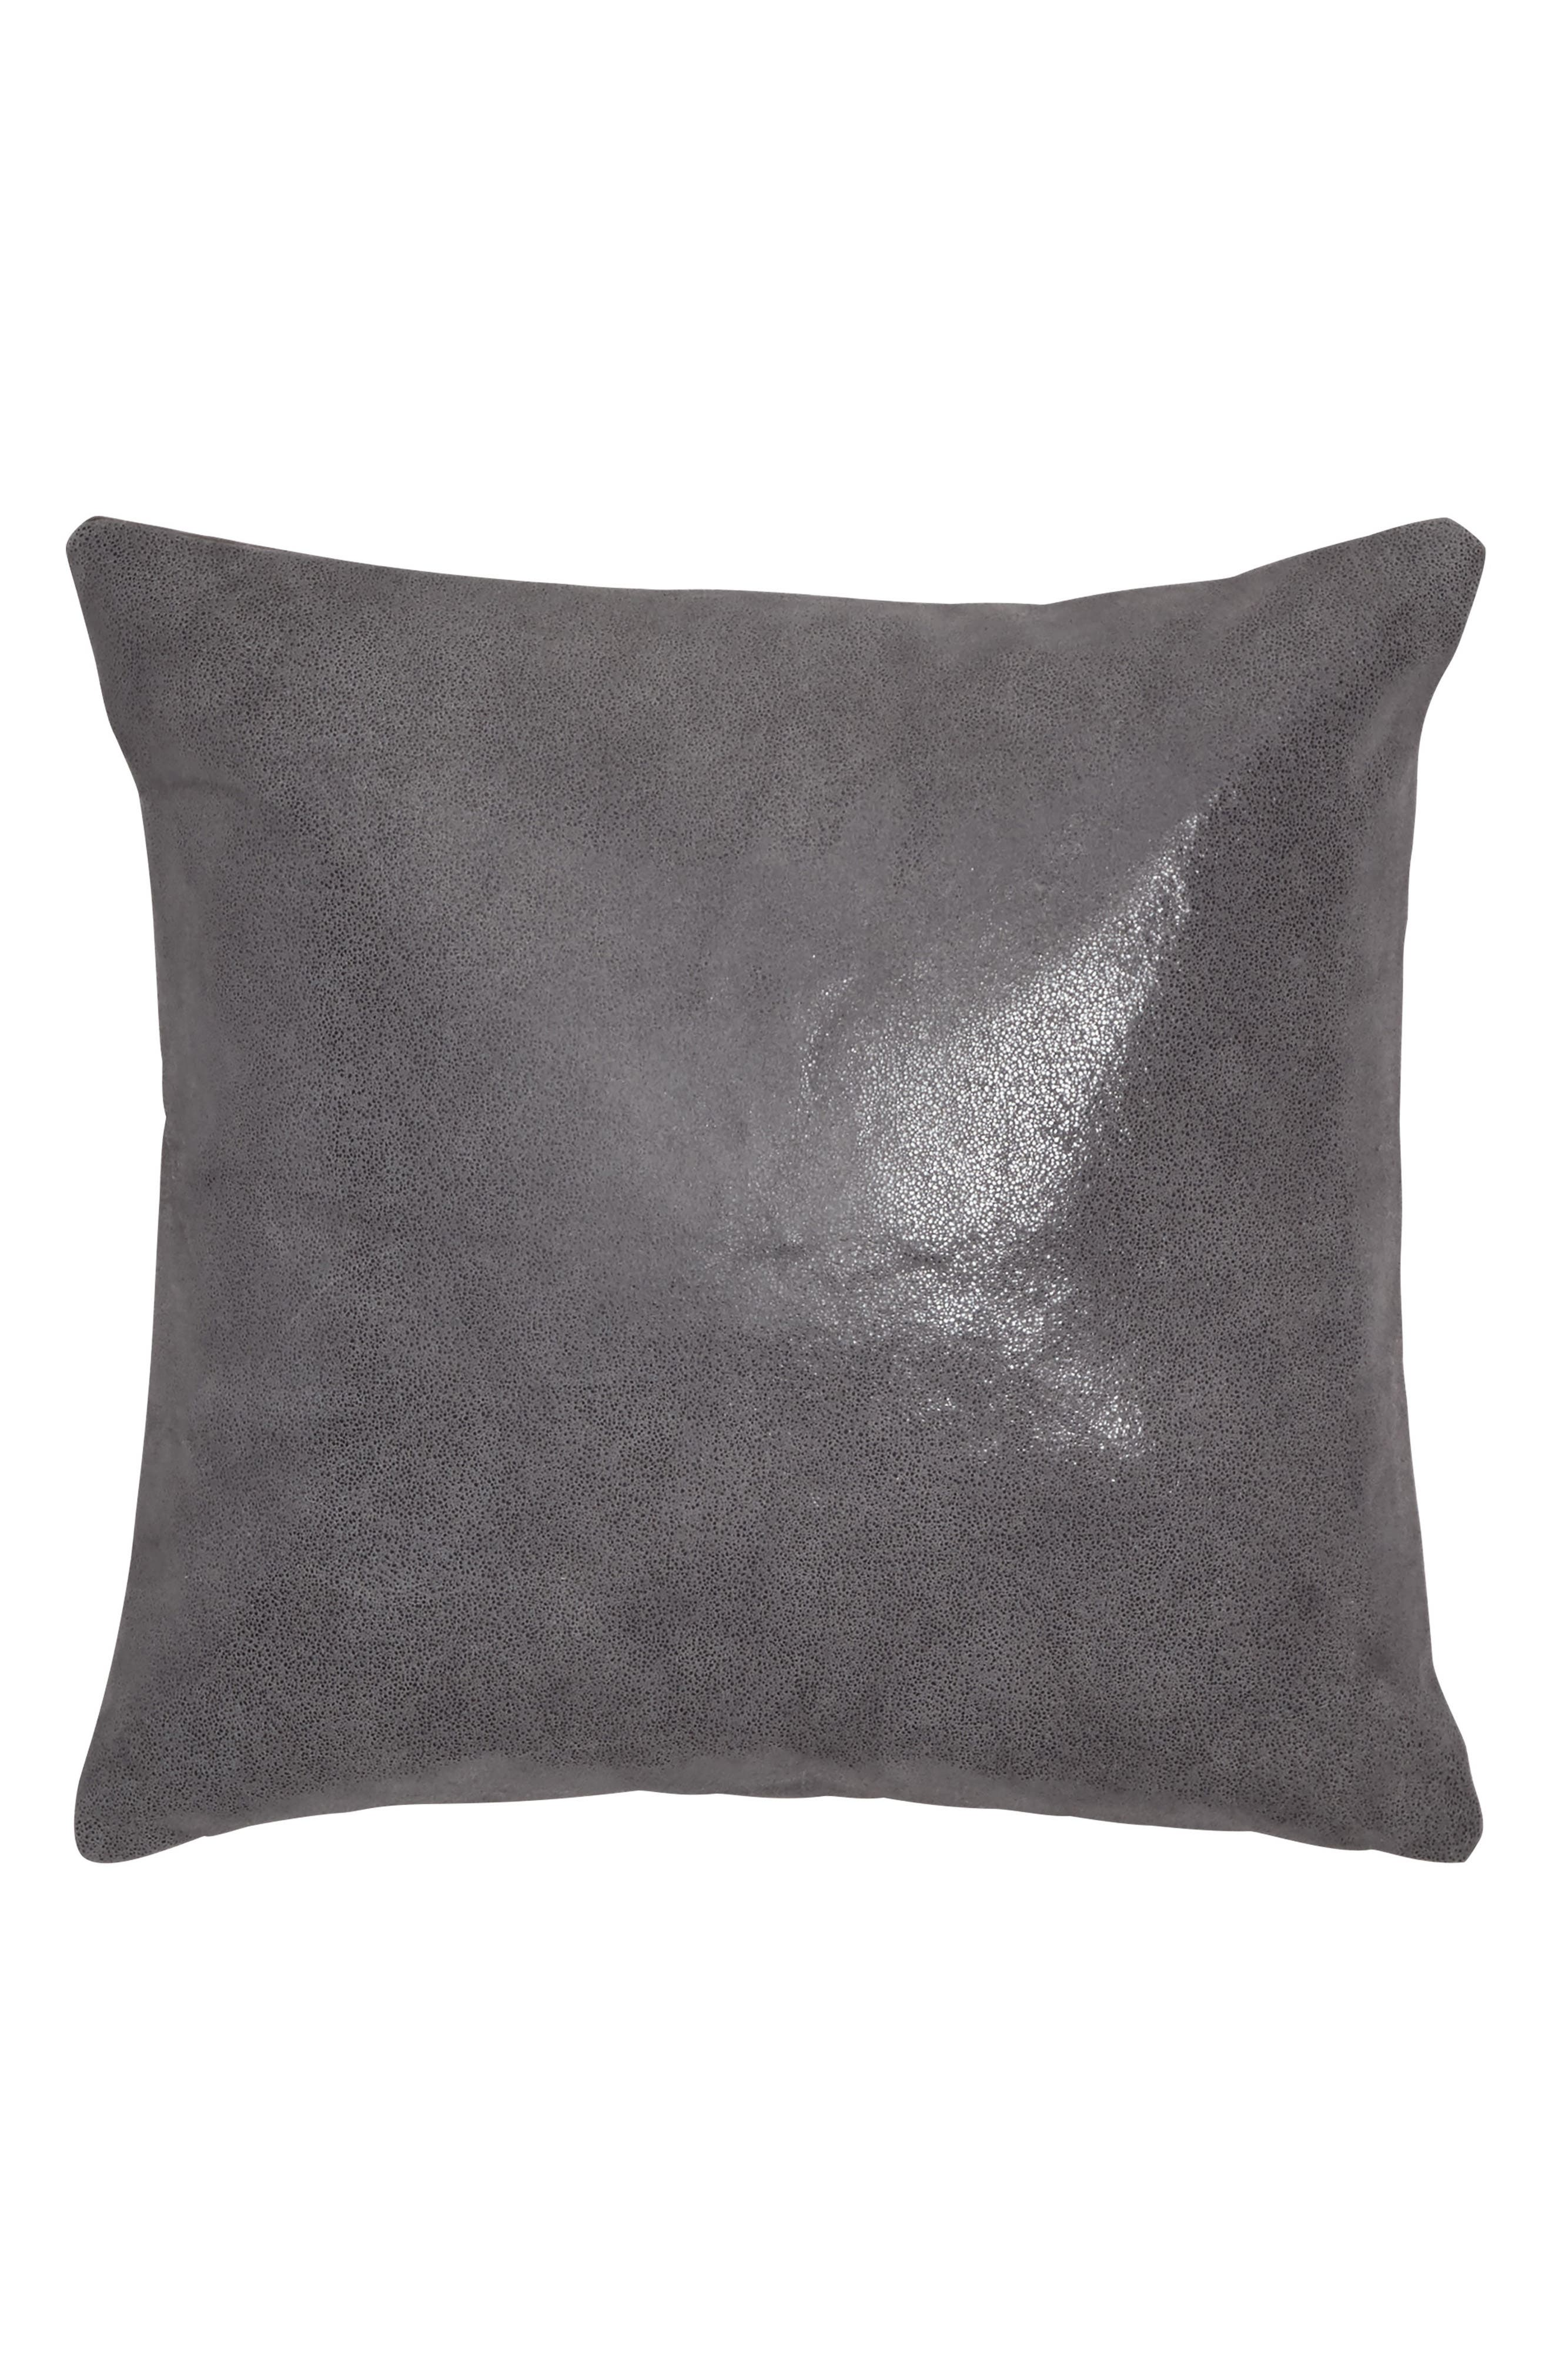 Moonscape Leather Accent Pillow,                             Main thumbnail 1, color,                             Charcoal